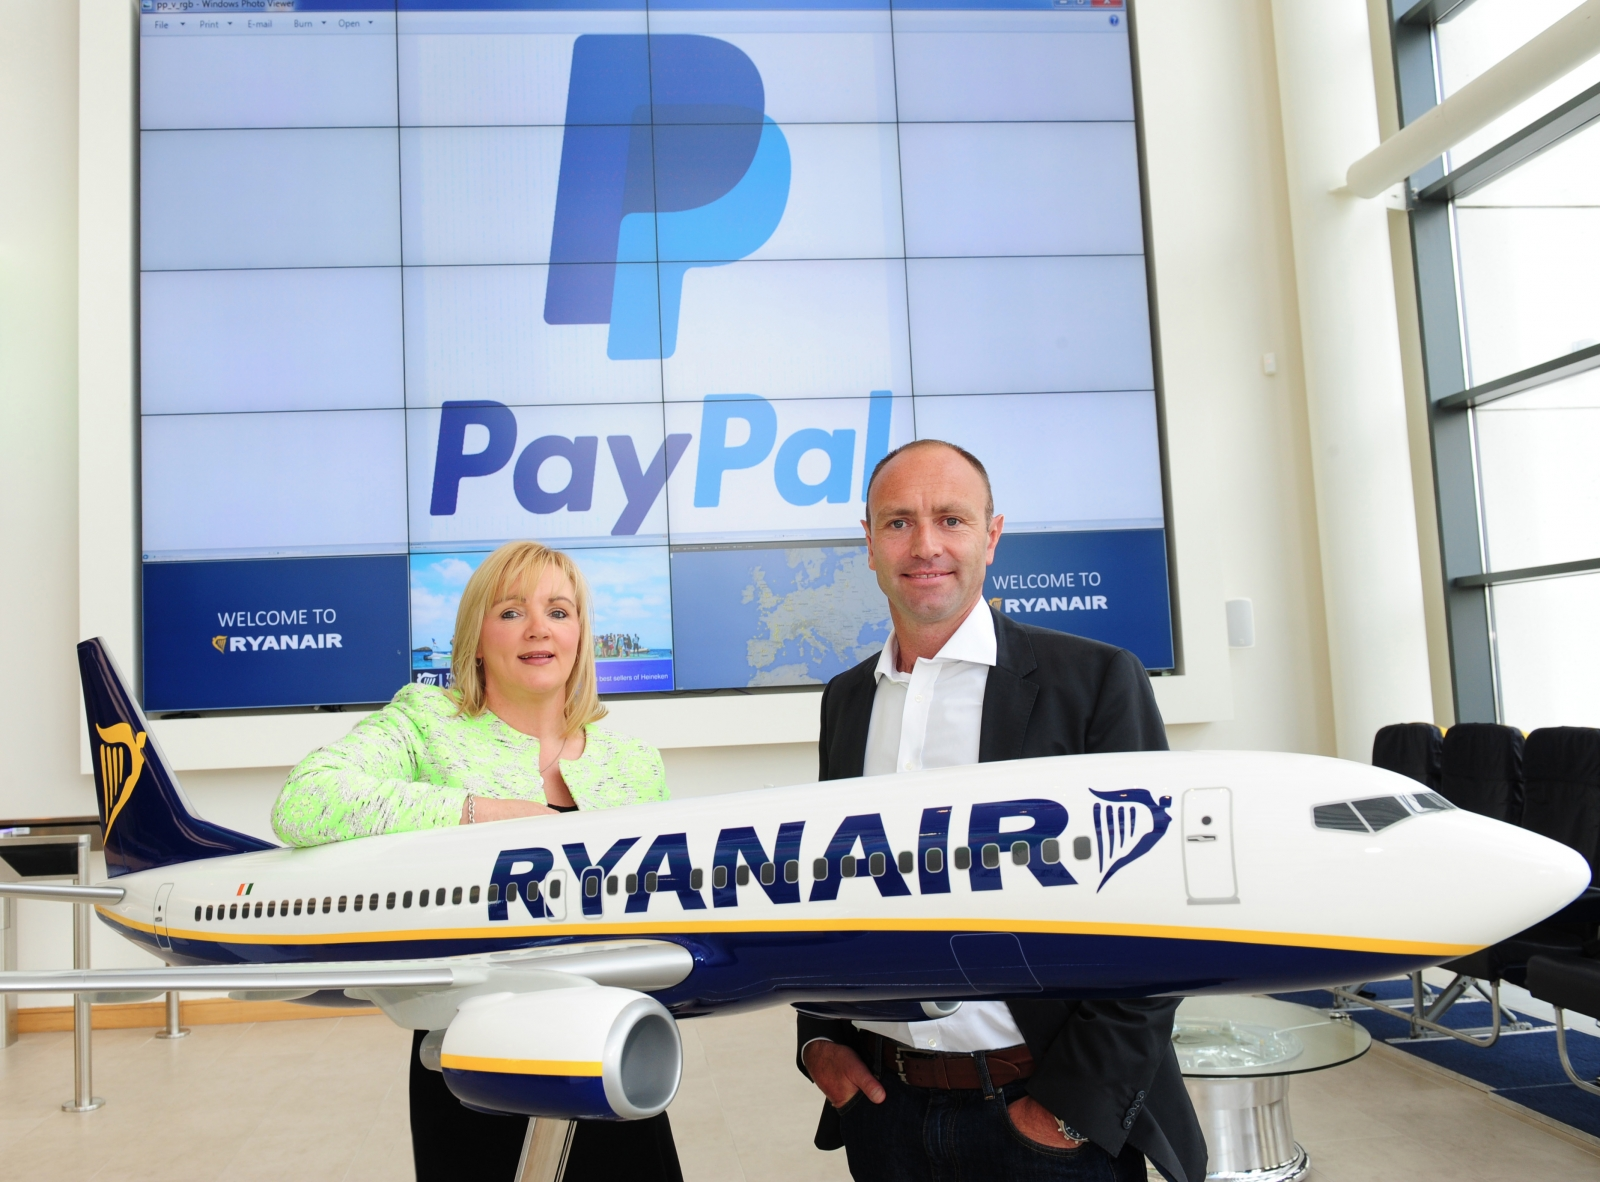 Ryanair Announces PayPal Partnership